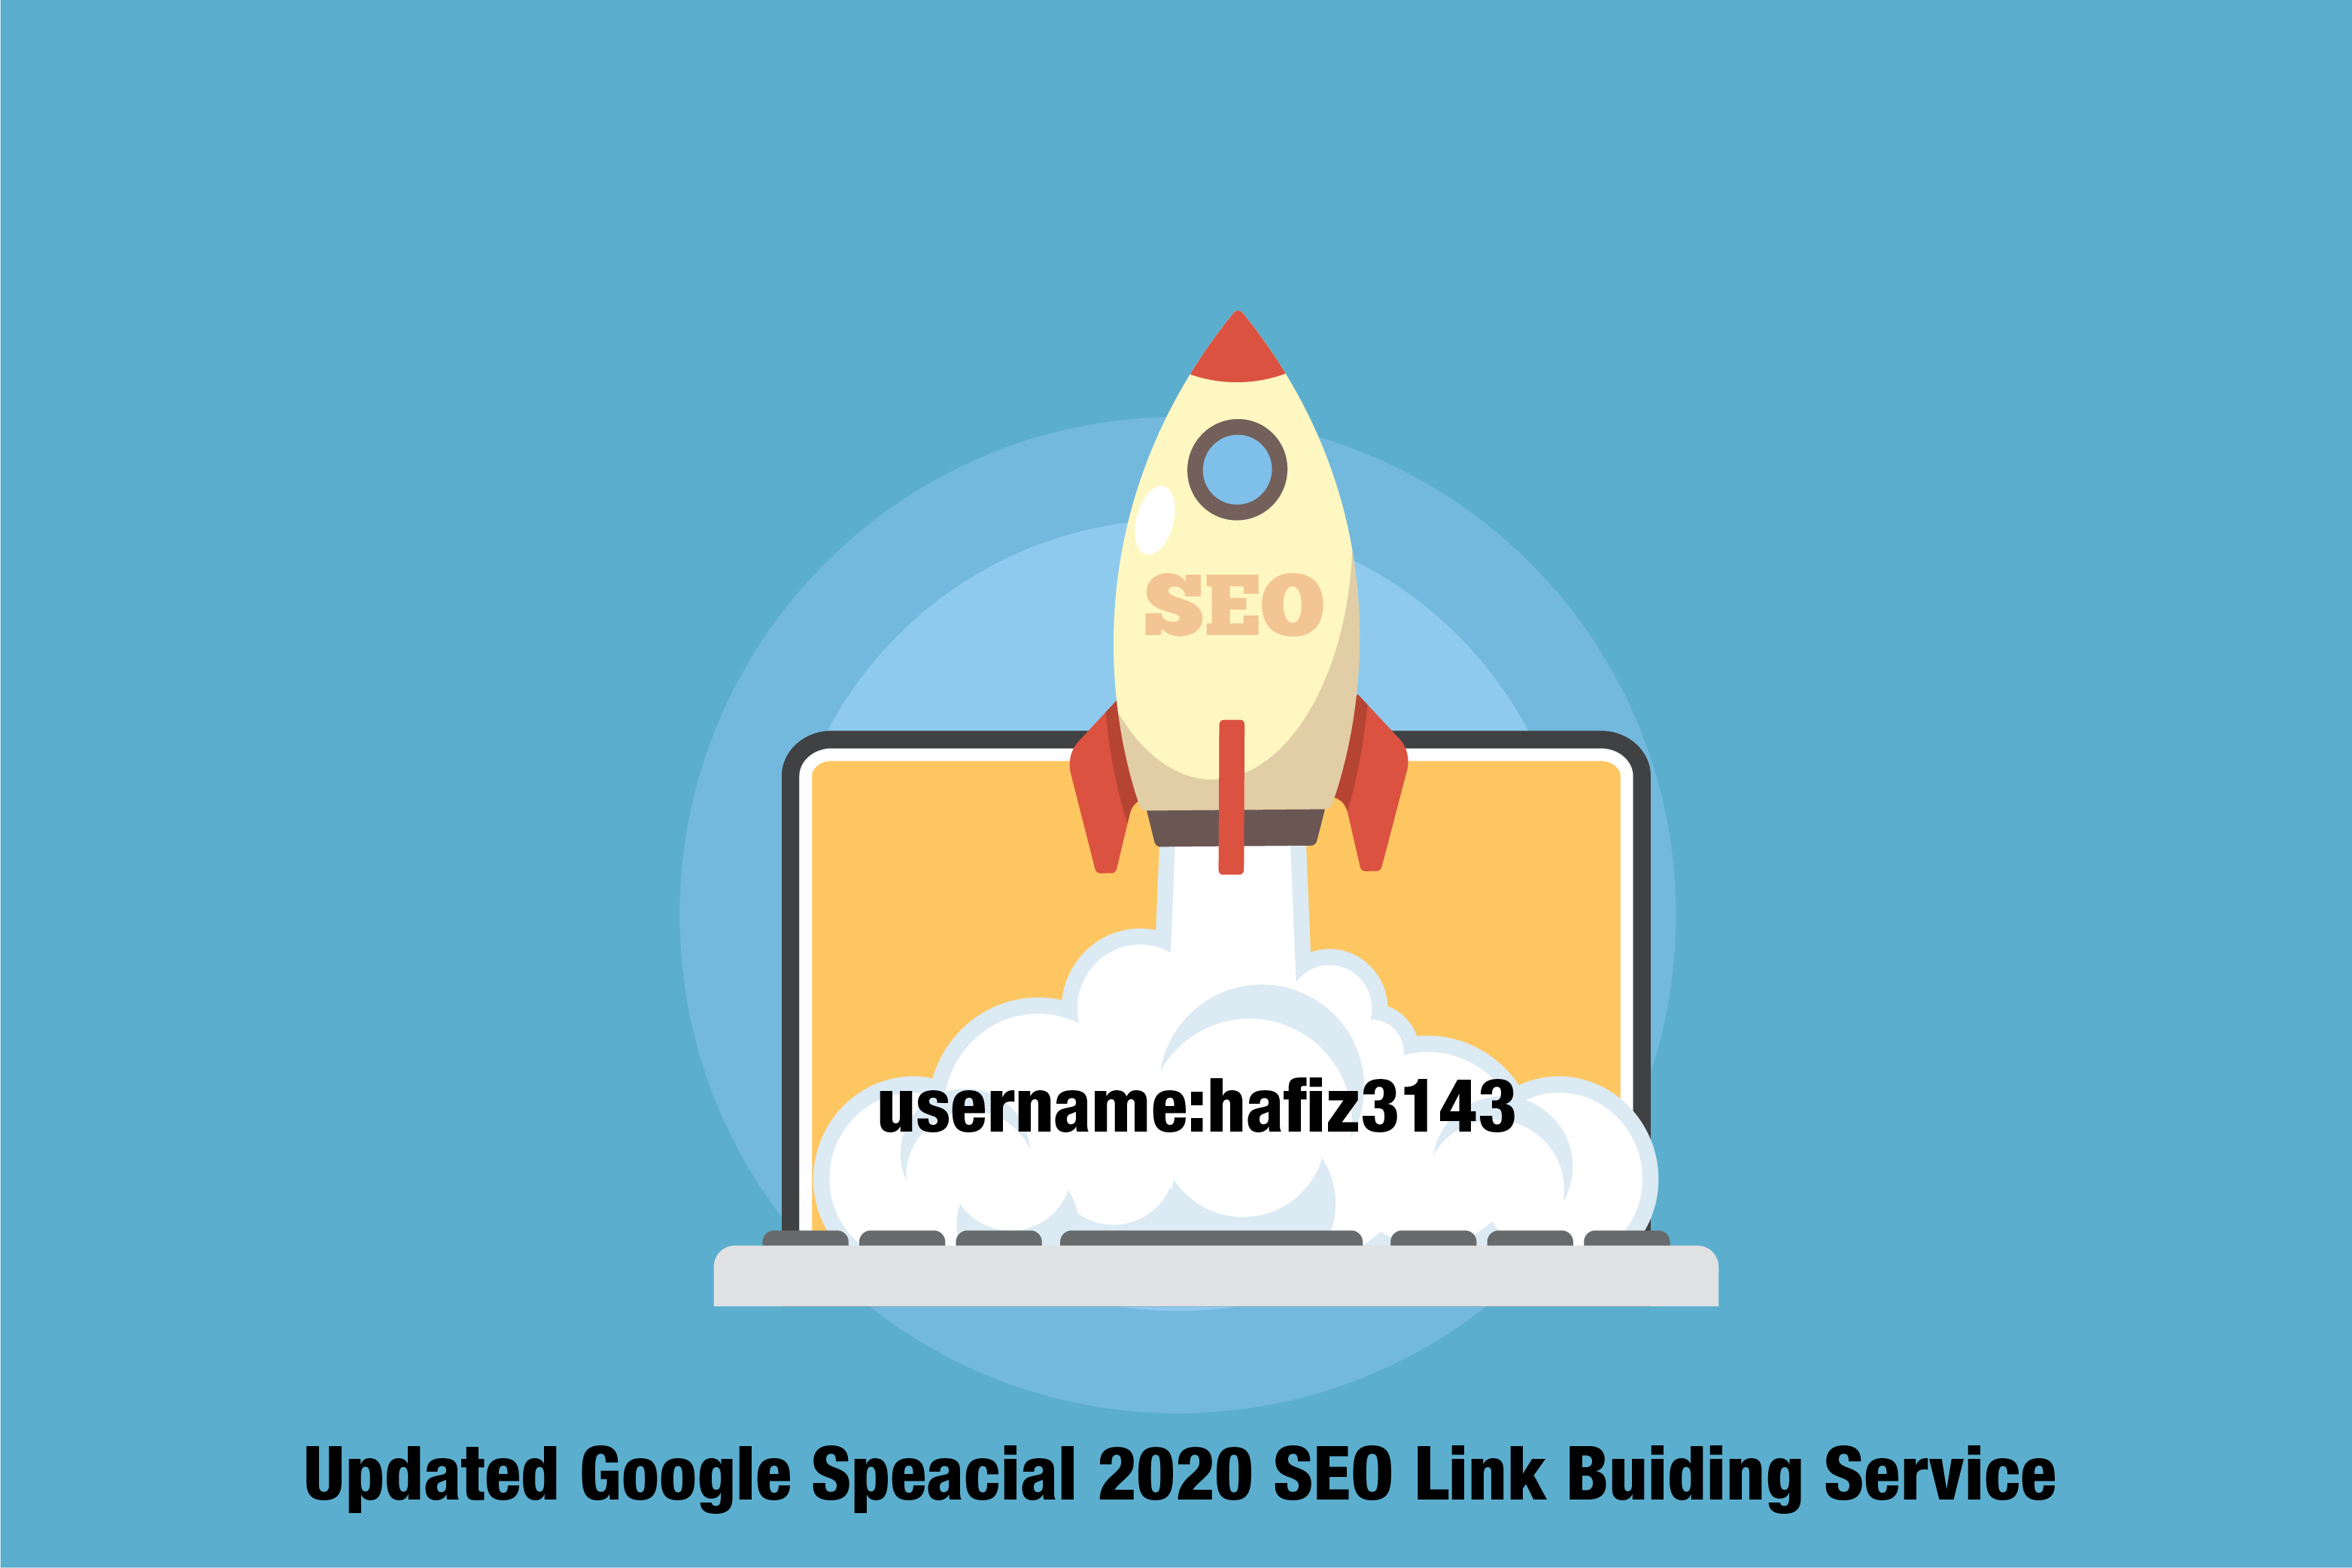 updated Google Special 2020 SEO Link Building Service Beat your Competitors Strong SEO Backlinks